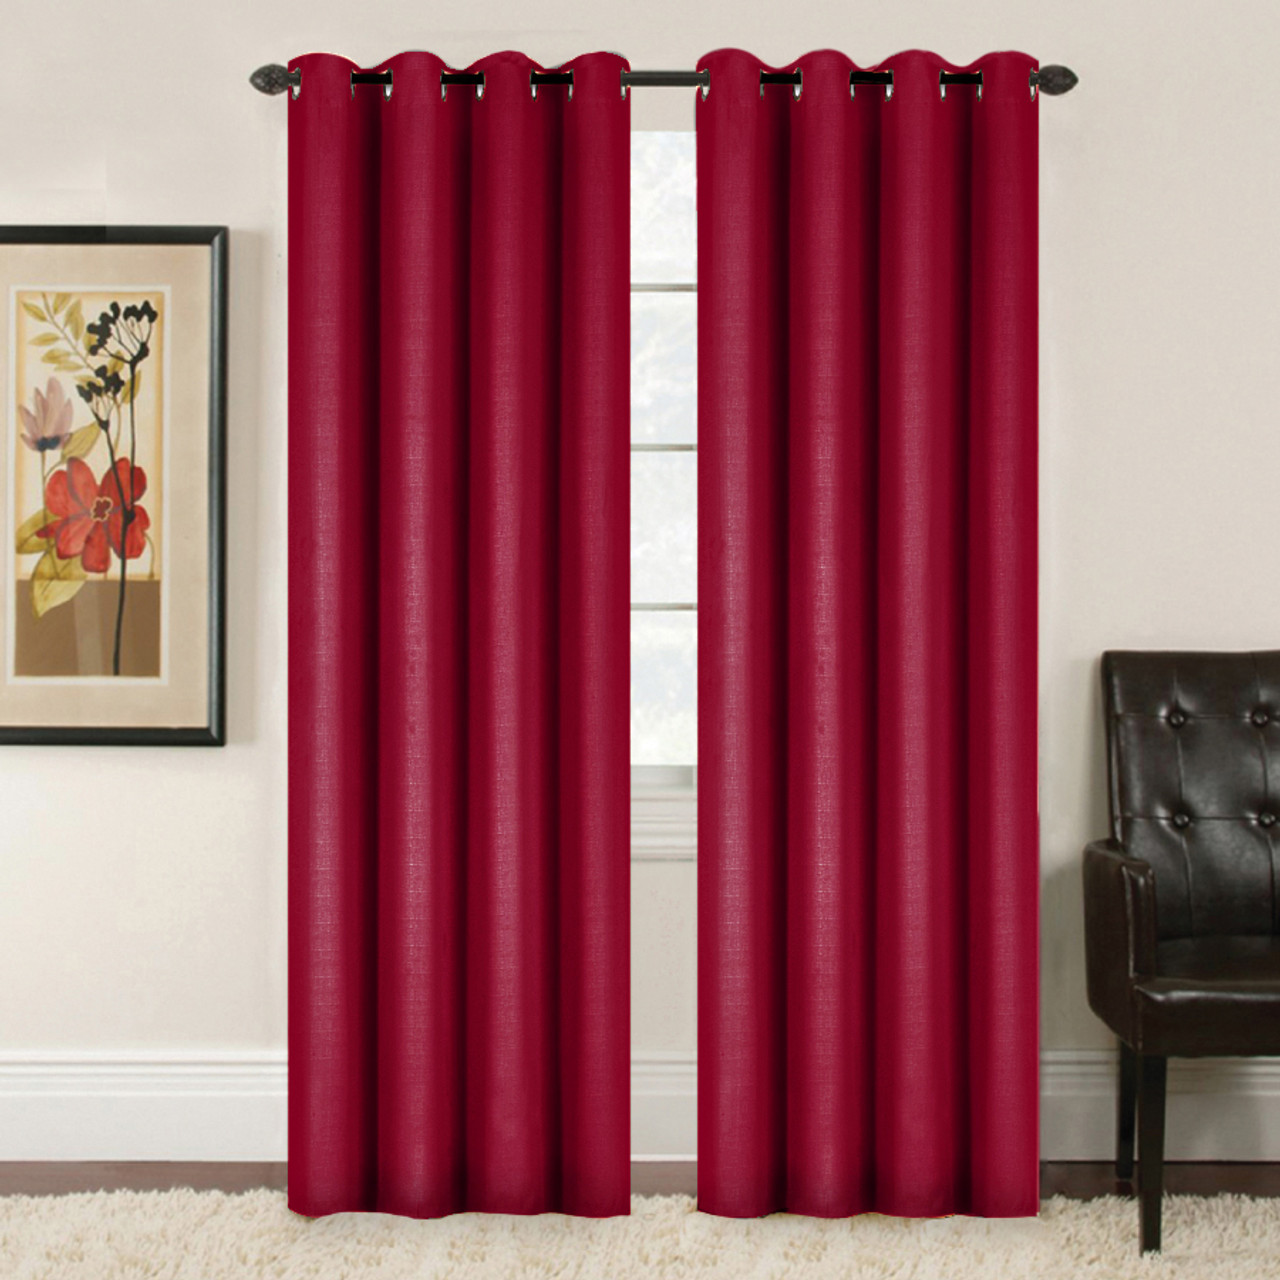 Embossed Weave Blockout Eyelet Curtain Burgundy 137 X 213cm Prices Plus